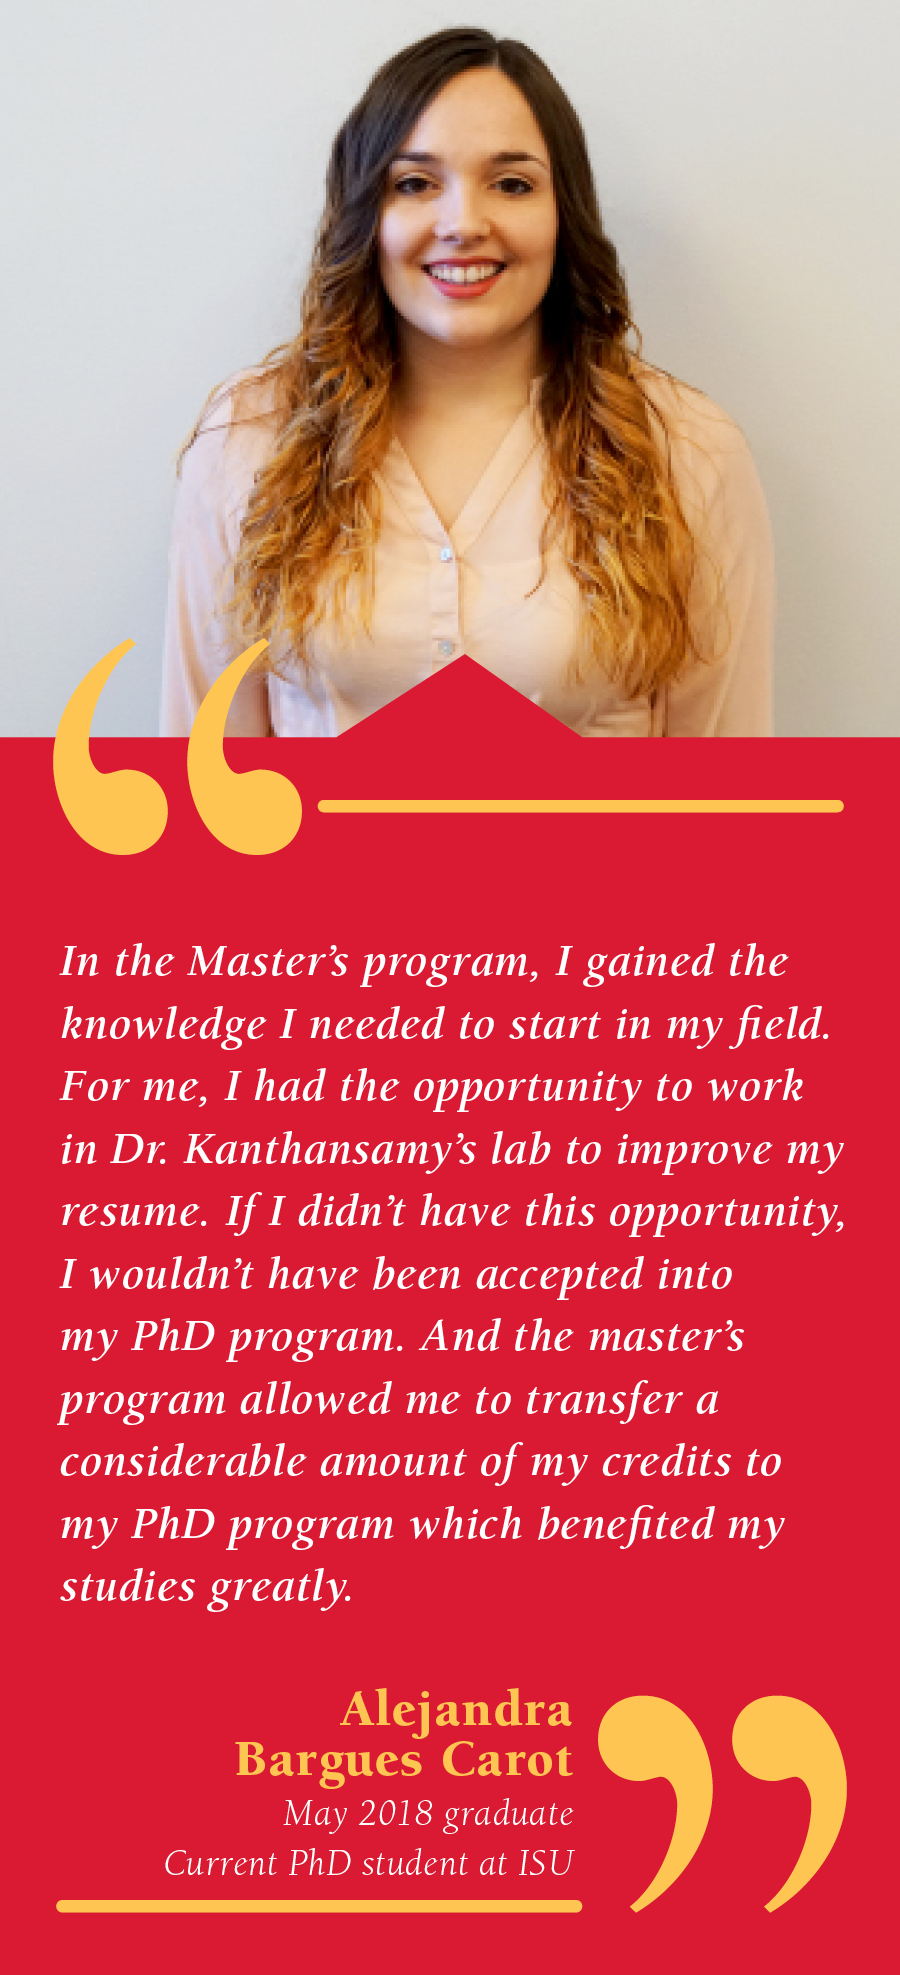 Alejandra Bargues Carot, May 2018 One-Year Program Graduate, Current PhD student at Iowa State, In the Master's Program I gained the knowledge I needed to start in my field. For me, I had the opportunity to work in Dr. Kanthasamy's lab to improve my resume. If I didn't have this opportunity I wouldn't have been accepted into my PhD program.